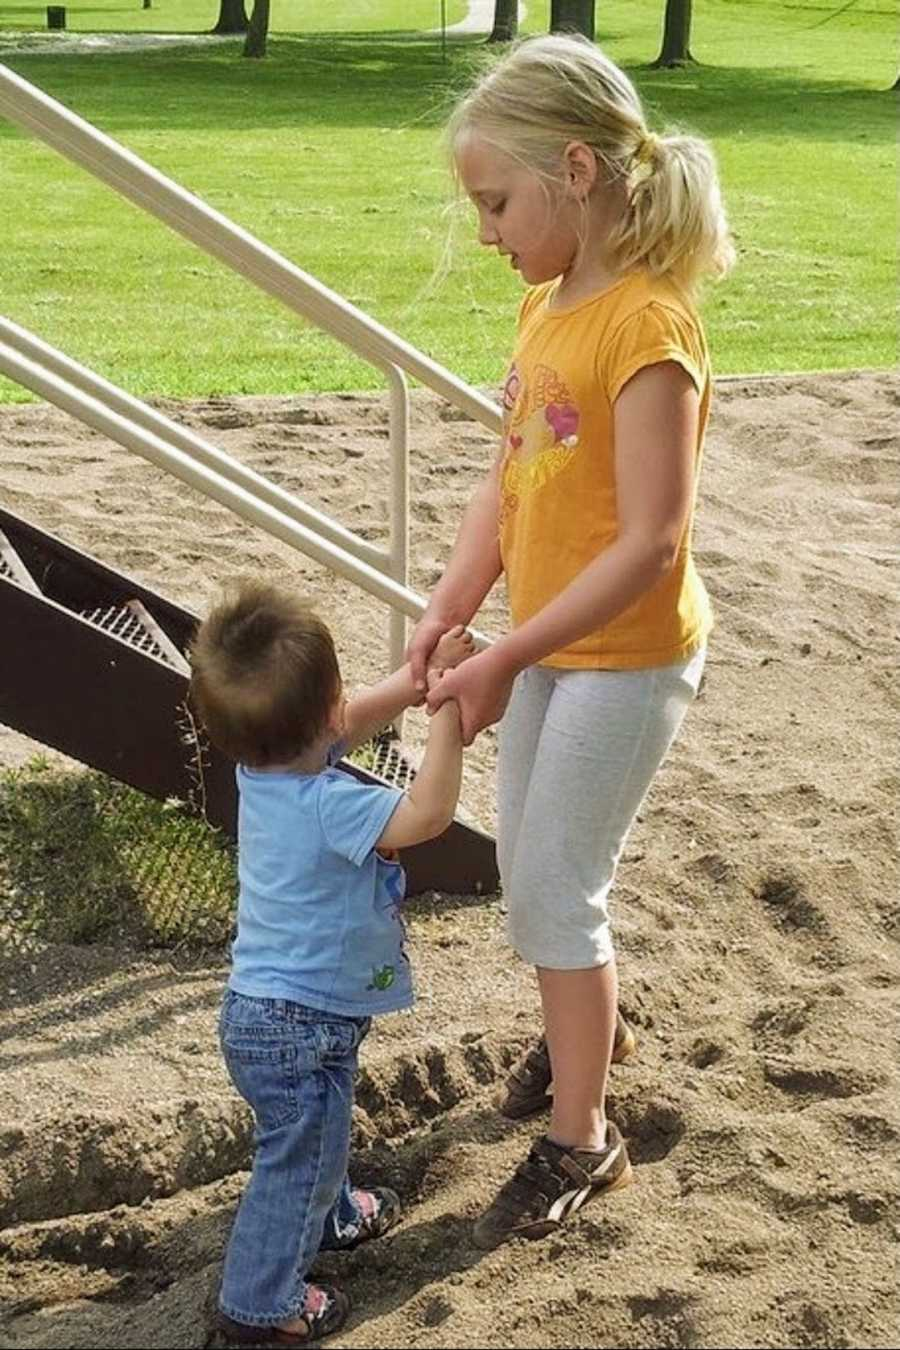 Foster siblings holding hands at playground